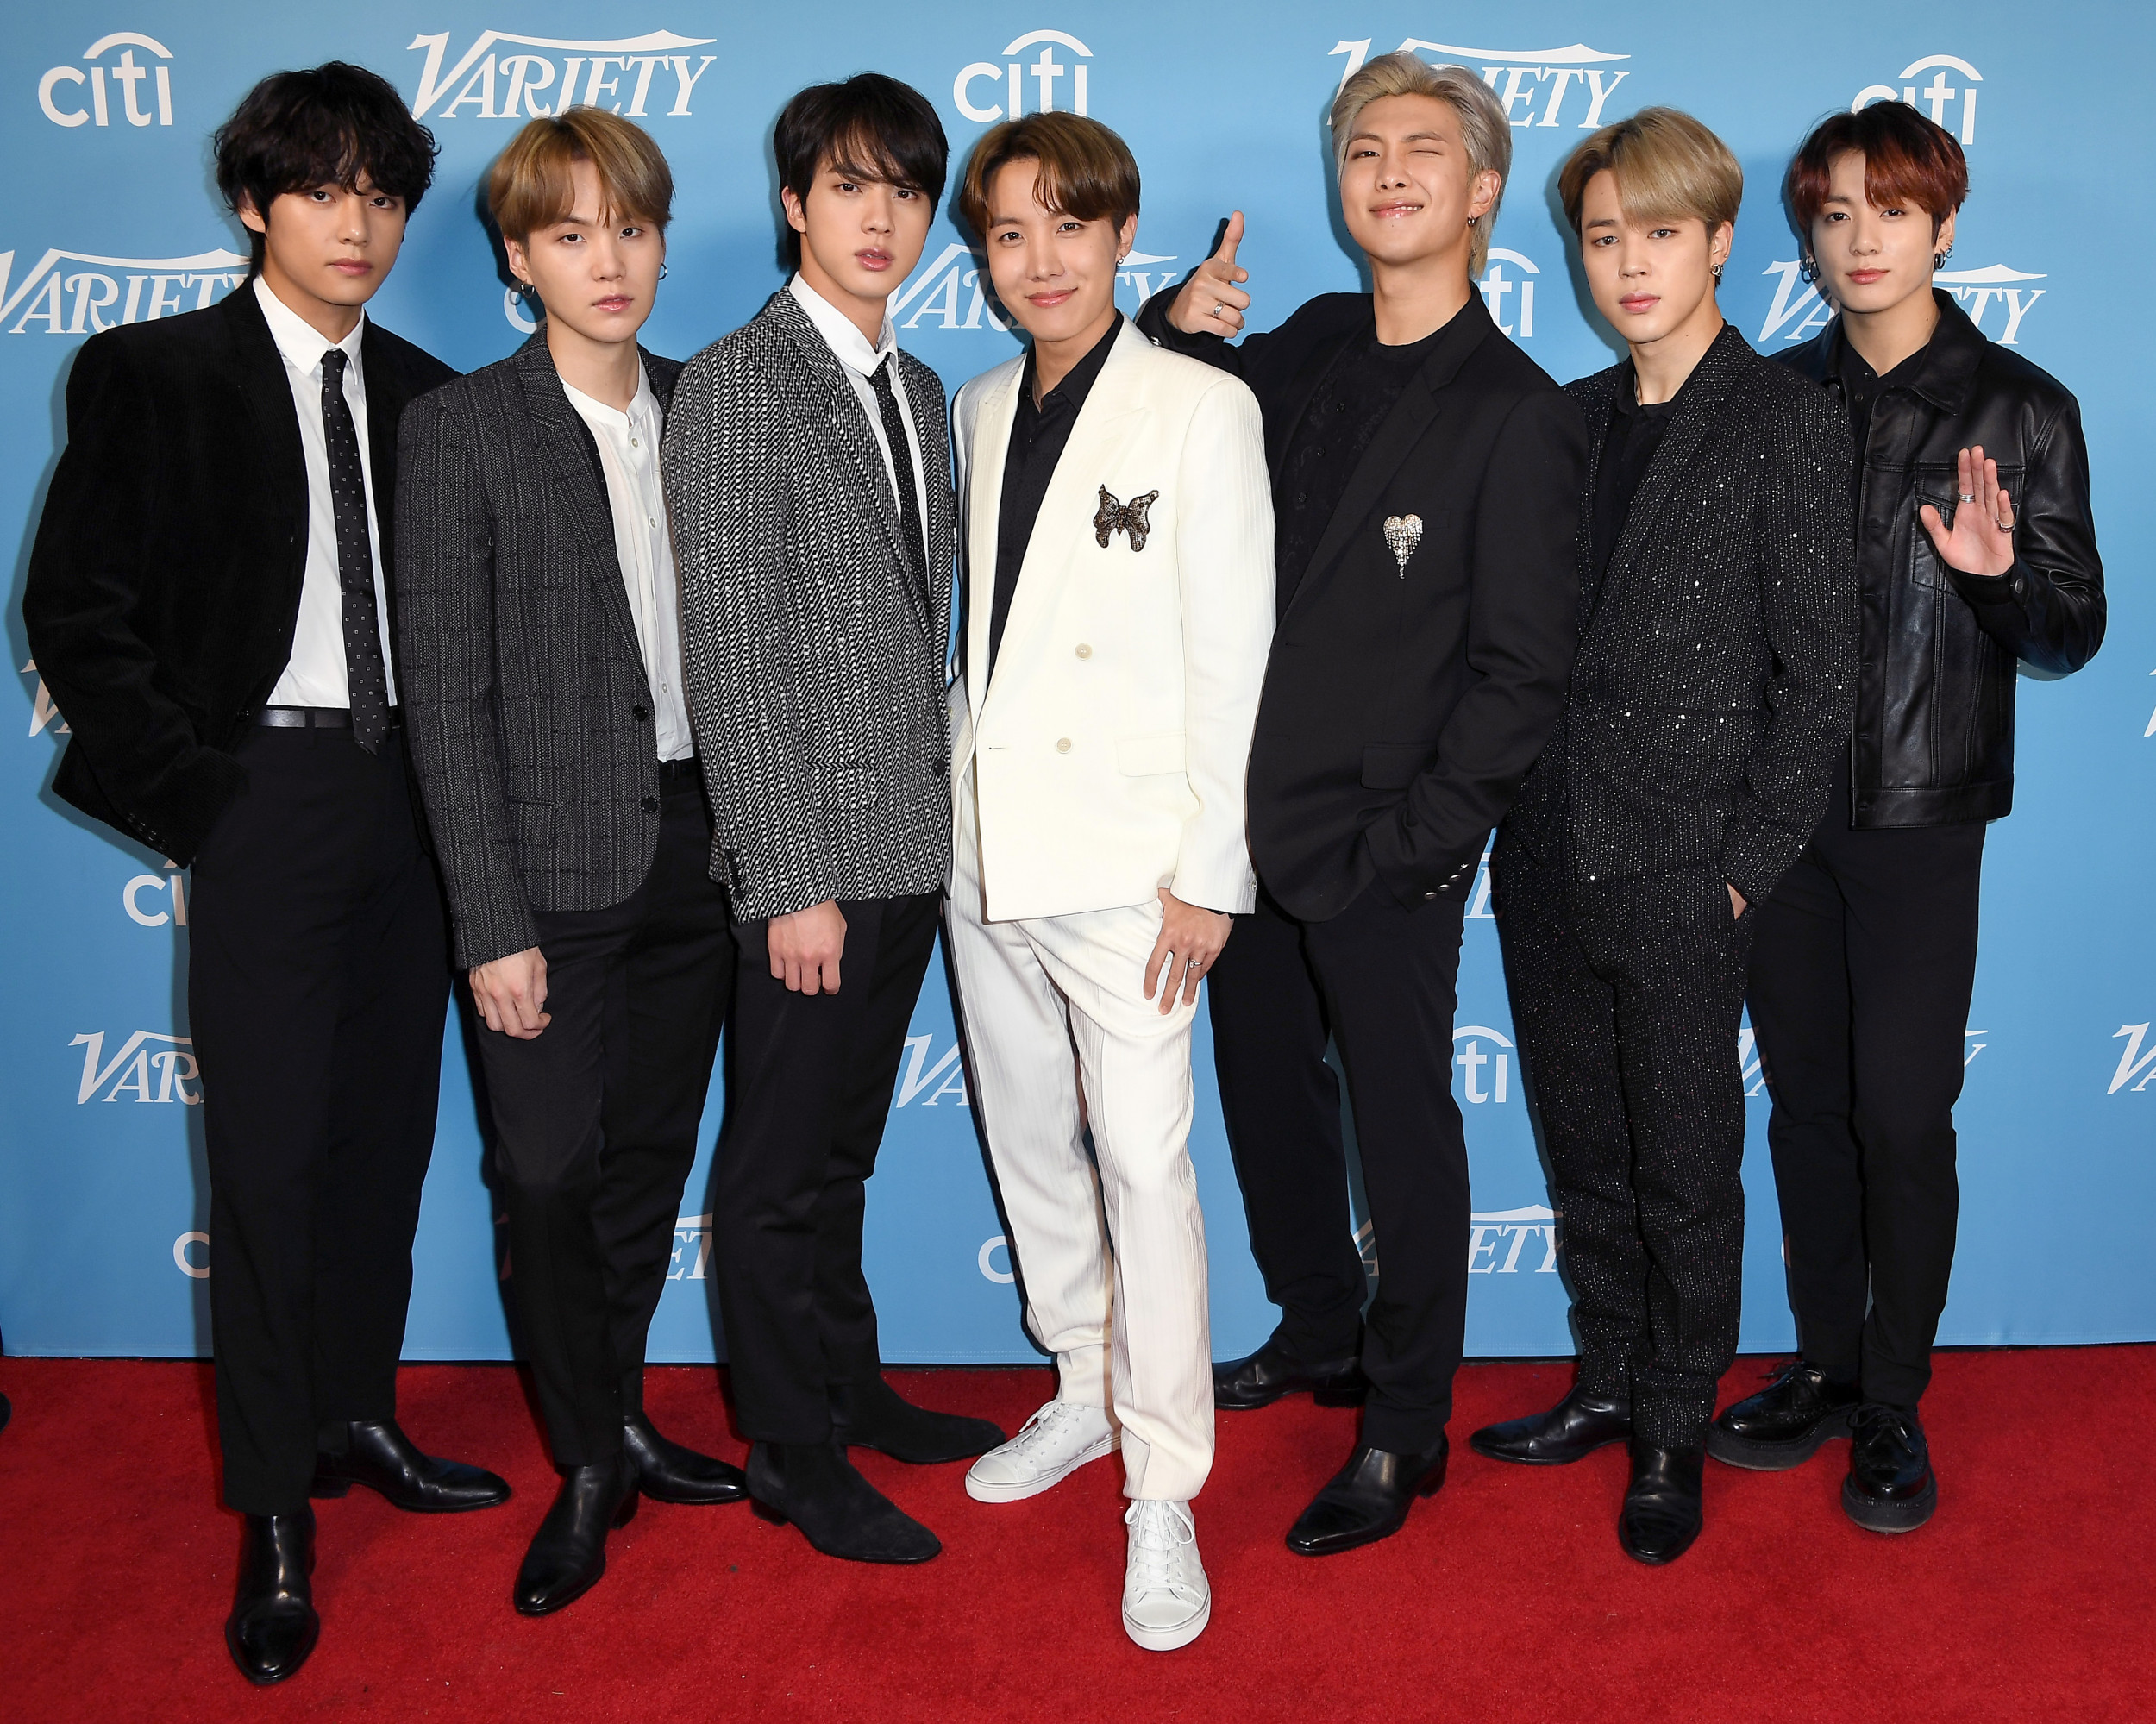 BTS, Aerosmith and other stars donate memorabilia for MusiCares charity auction